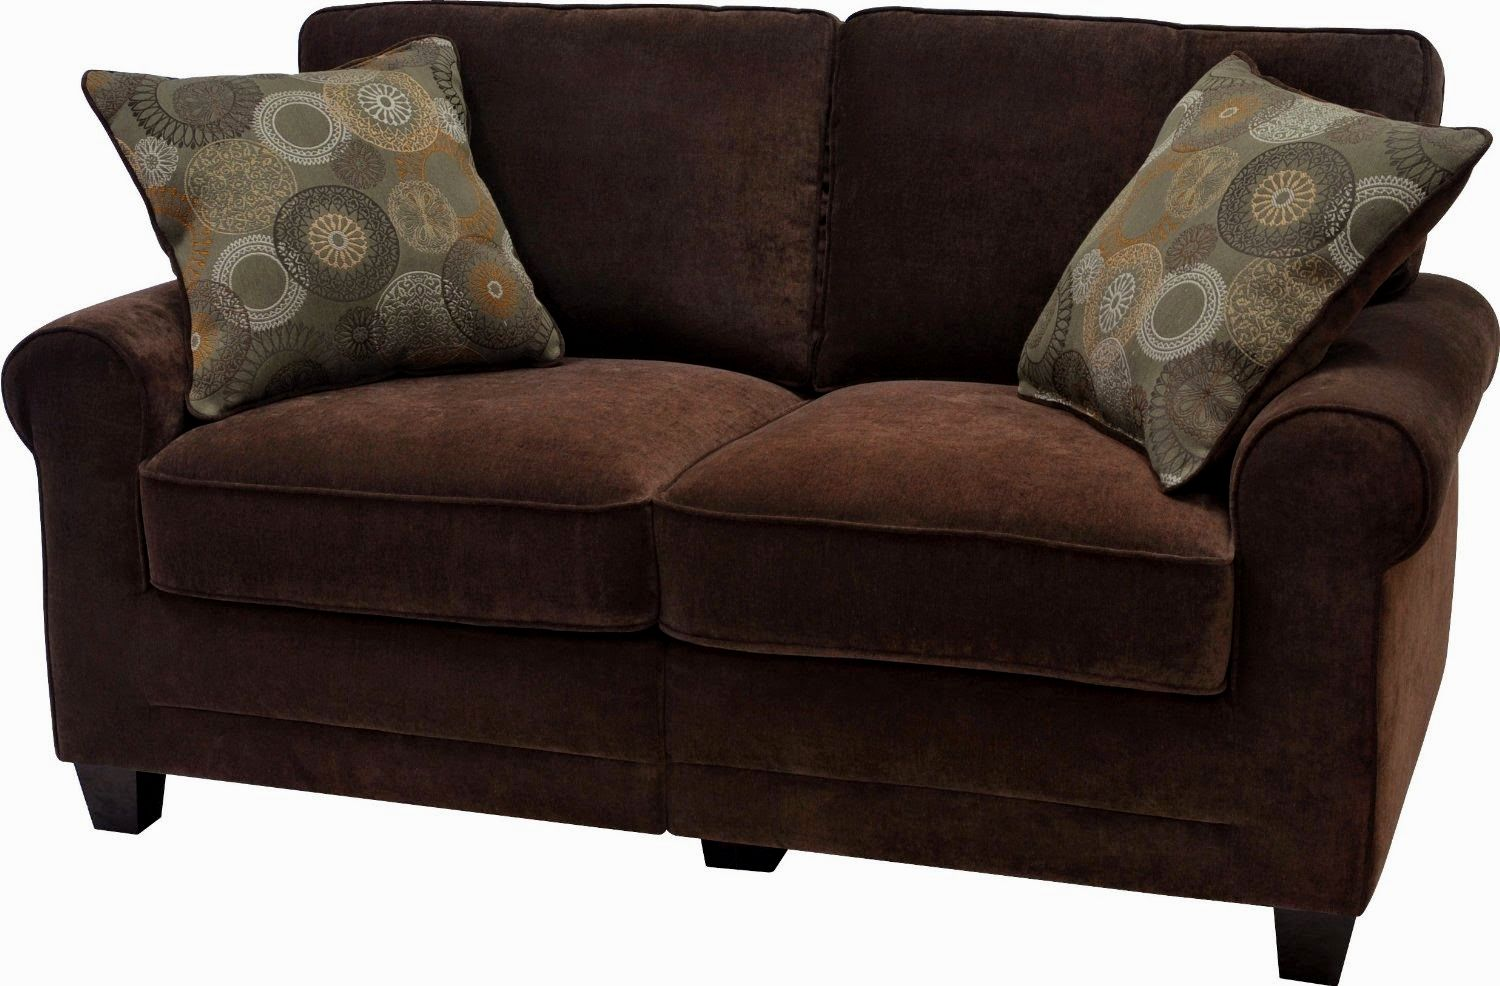 top serta upholstery sofa collection-Stylish Serta Upholstery sofa Gallery